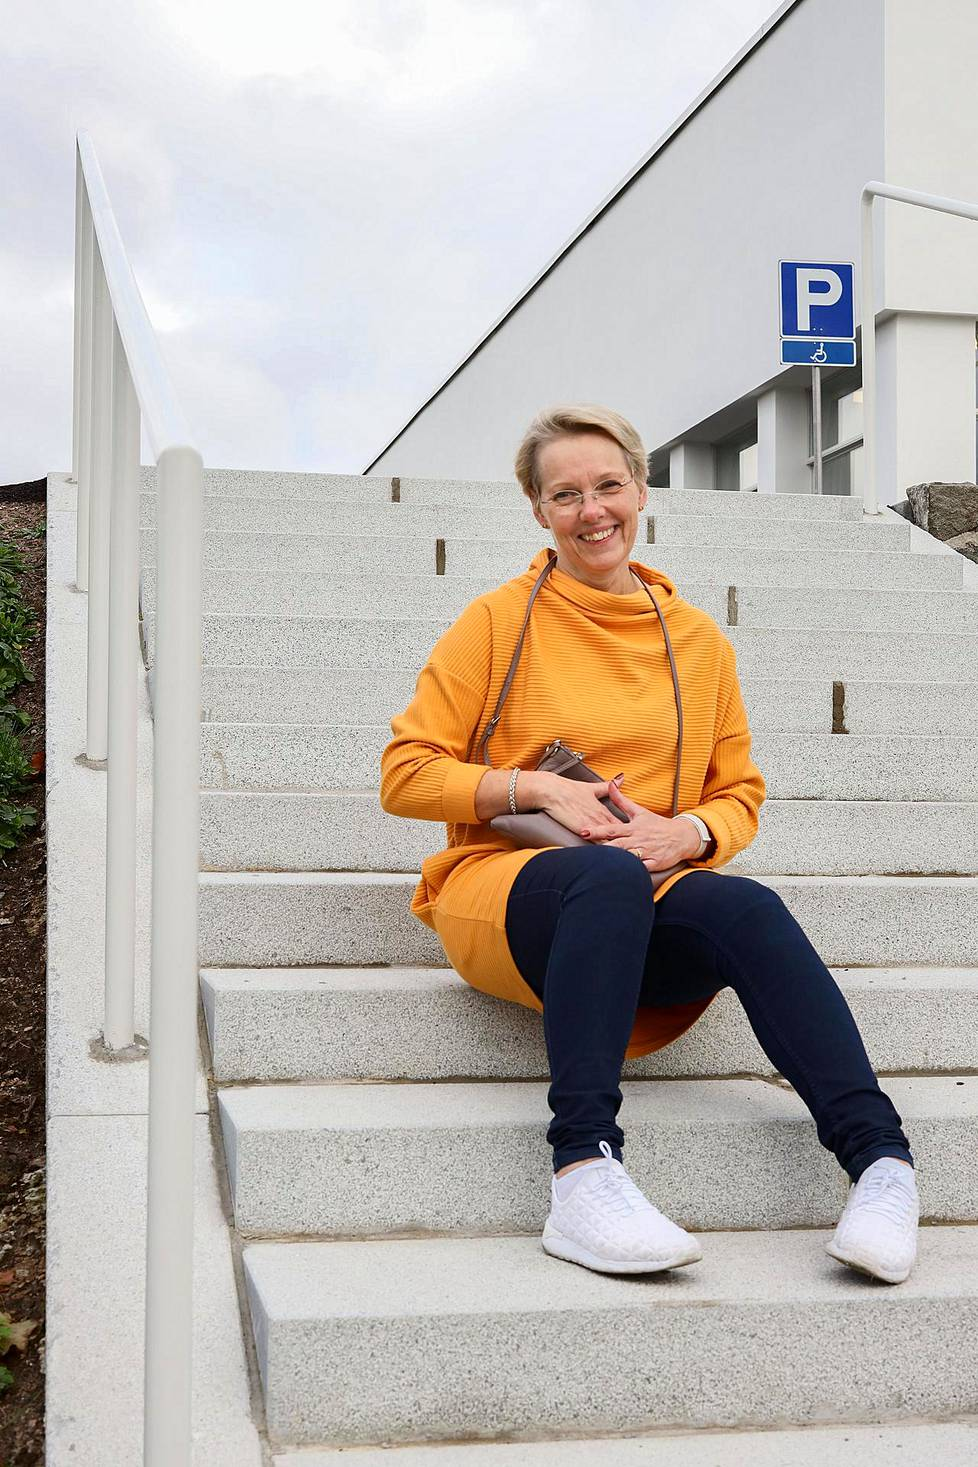 Tuula Stenroos on the steps of the Sports Museum in autumn 2020.